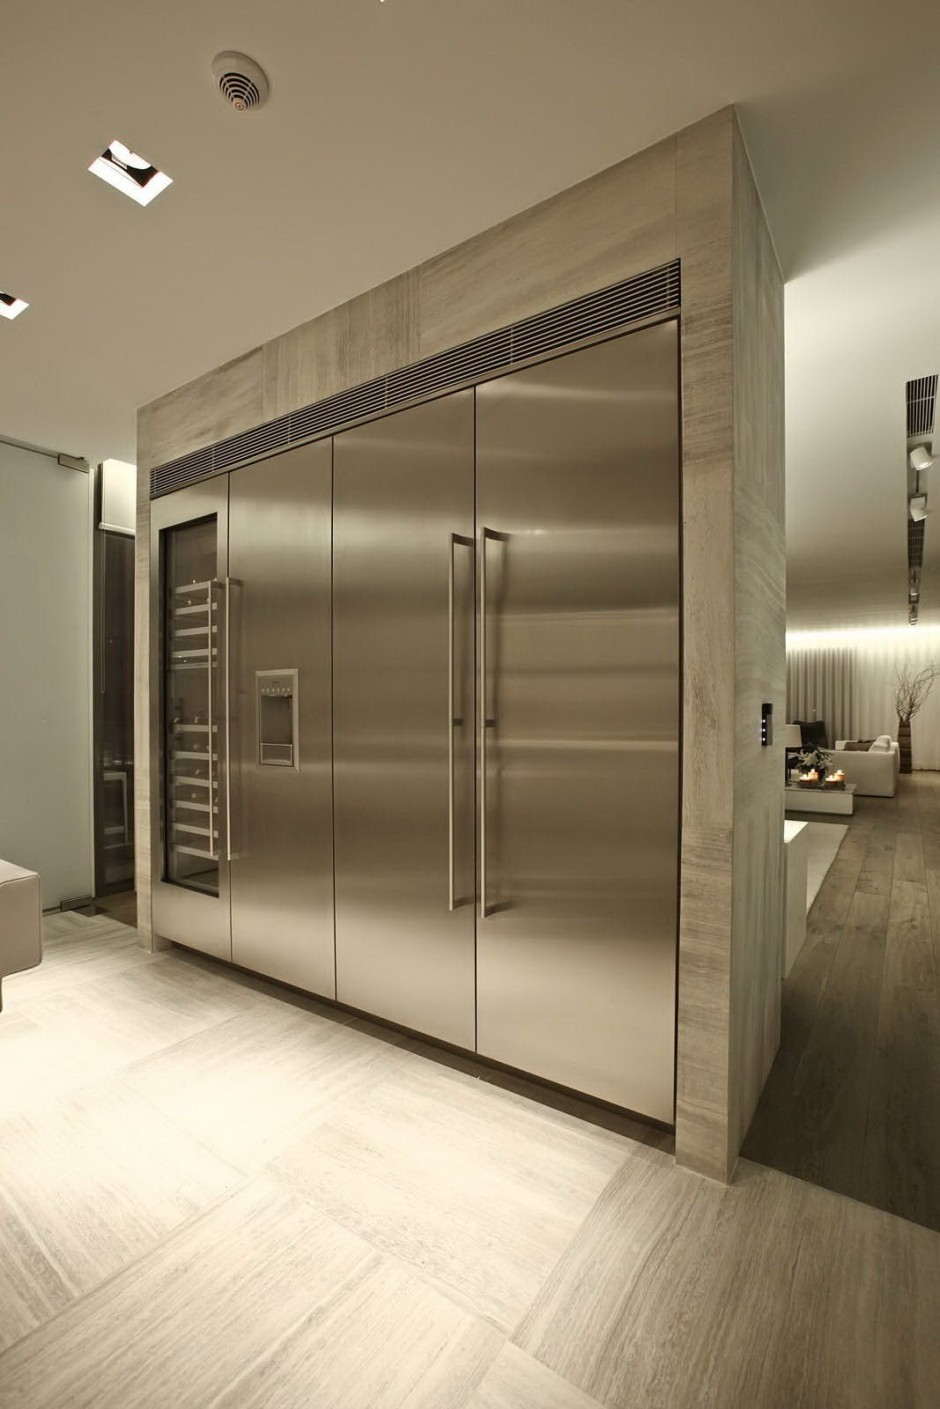 Large Stainless Steel Appliances - Bold cosmopolitan house in istanbul